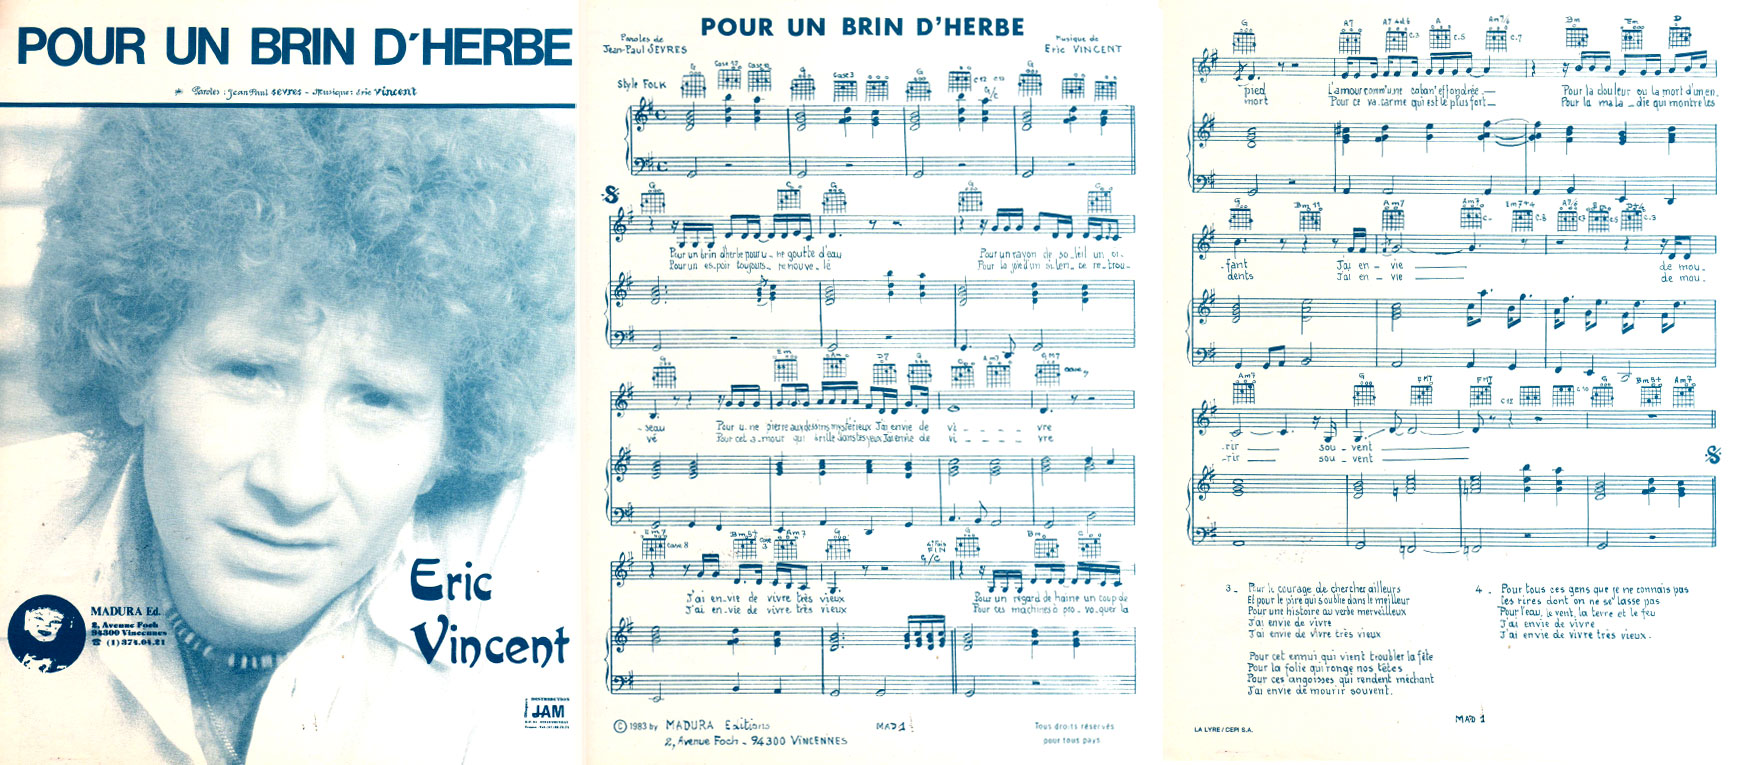 Partition/Sheet Music